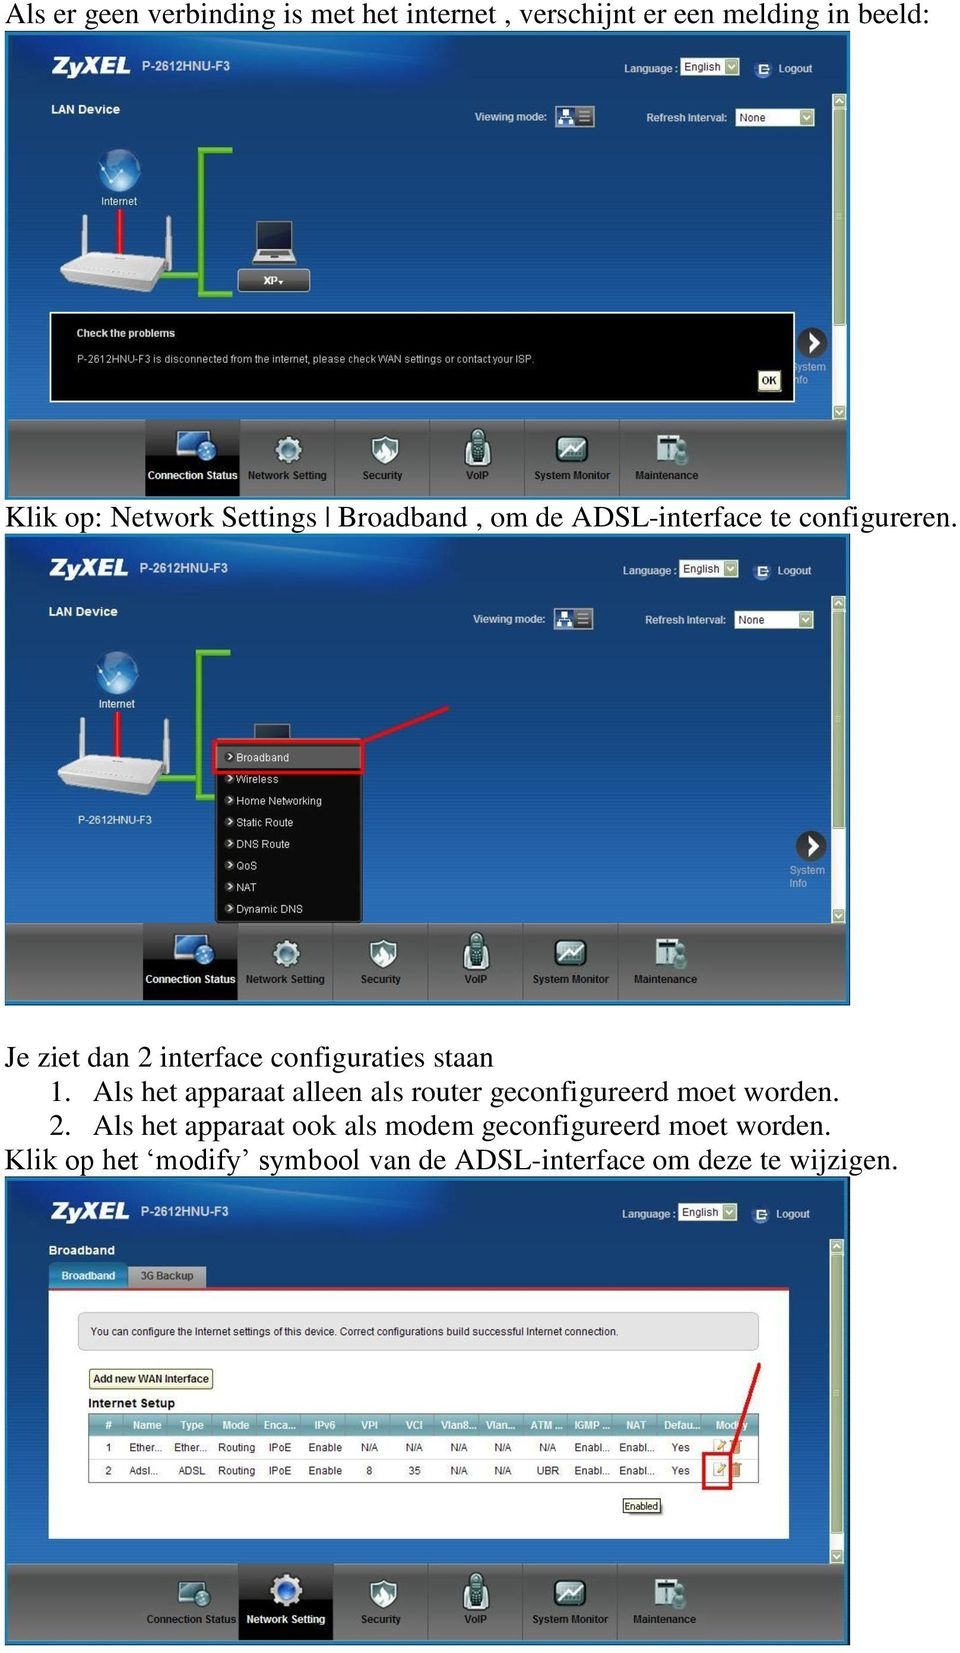 Je ziet dan 2 interface configuraties staan 1.